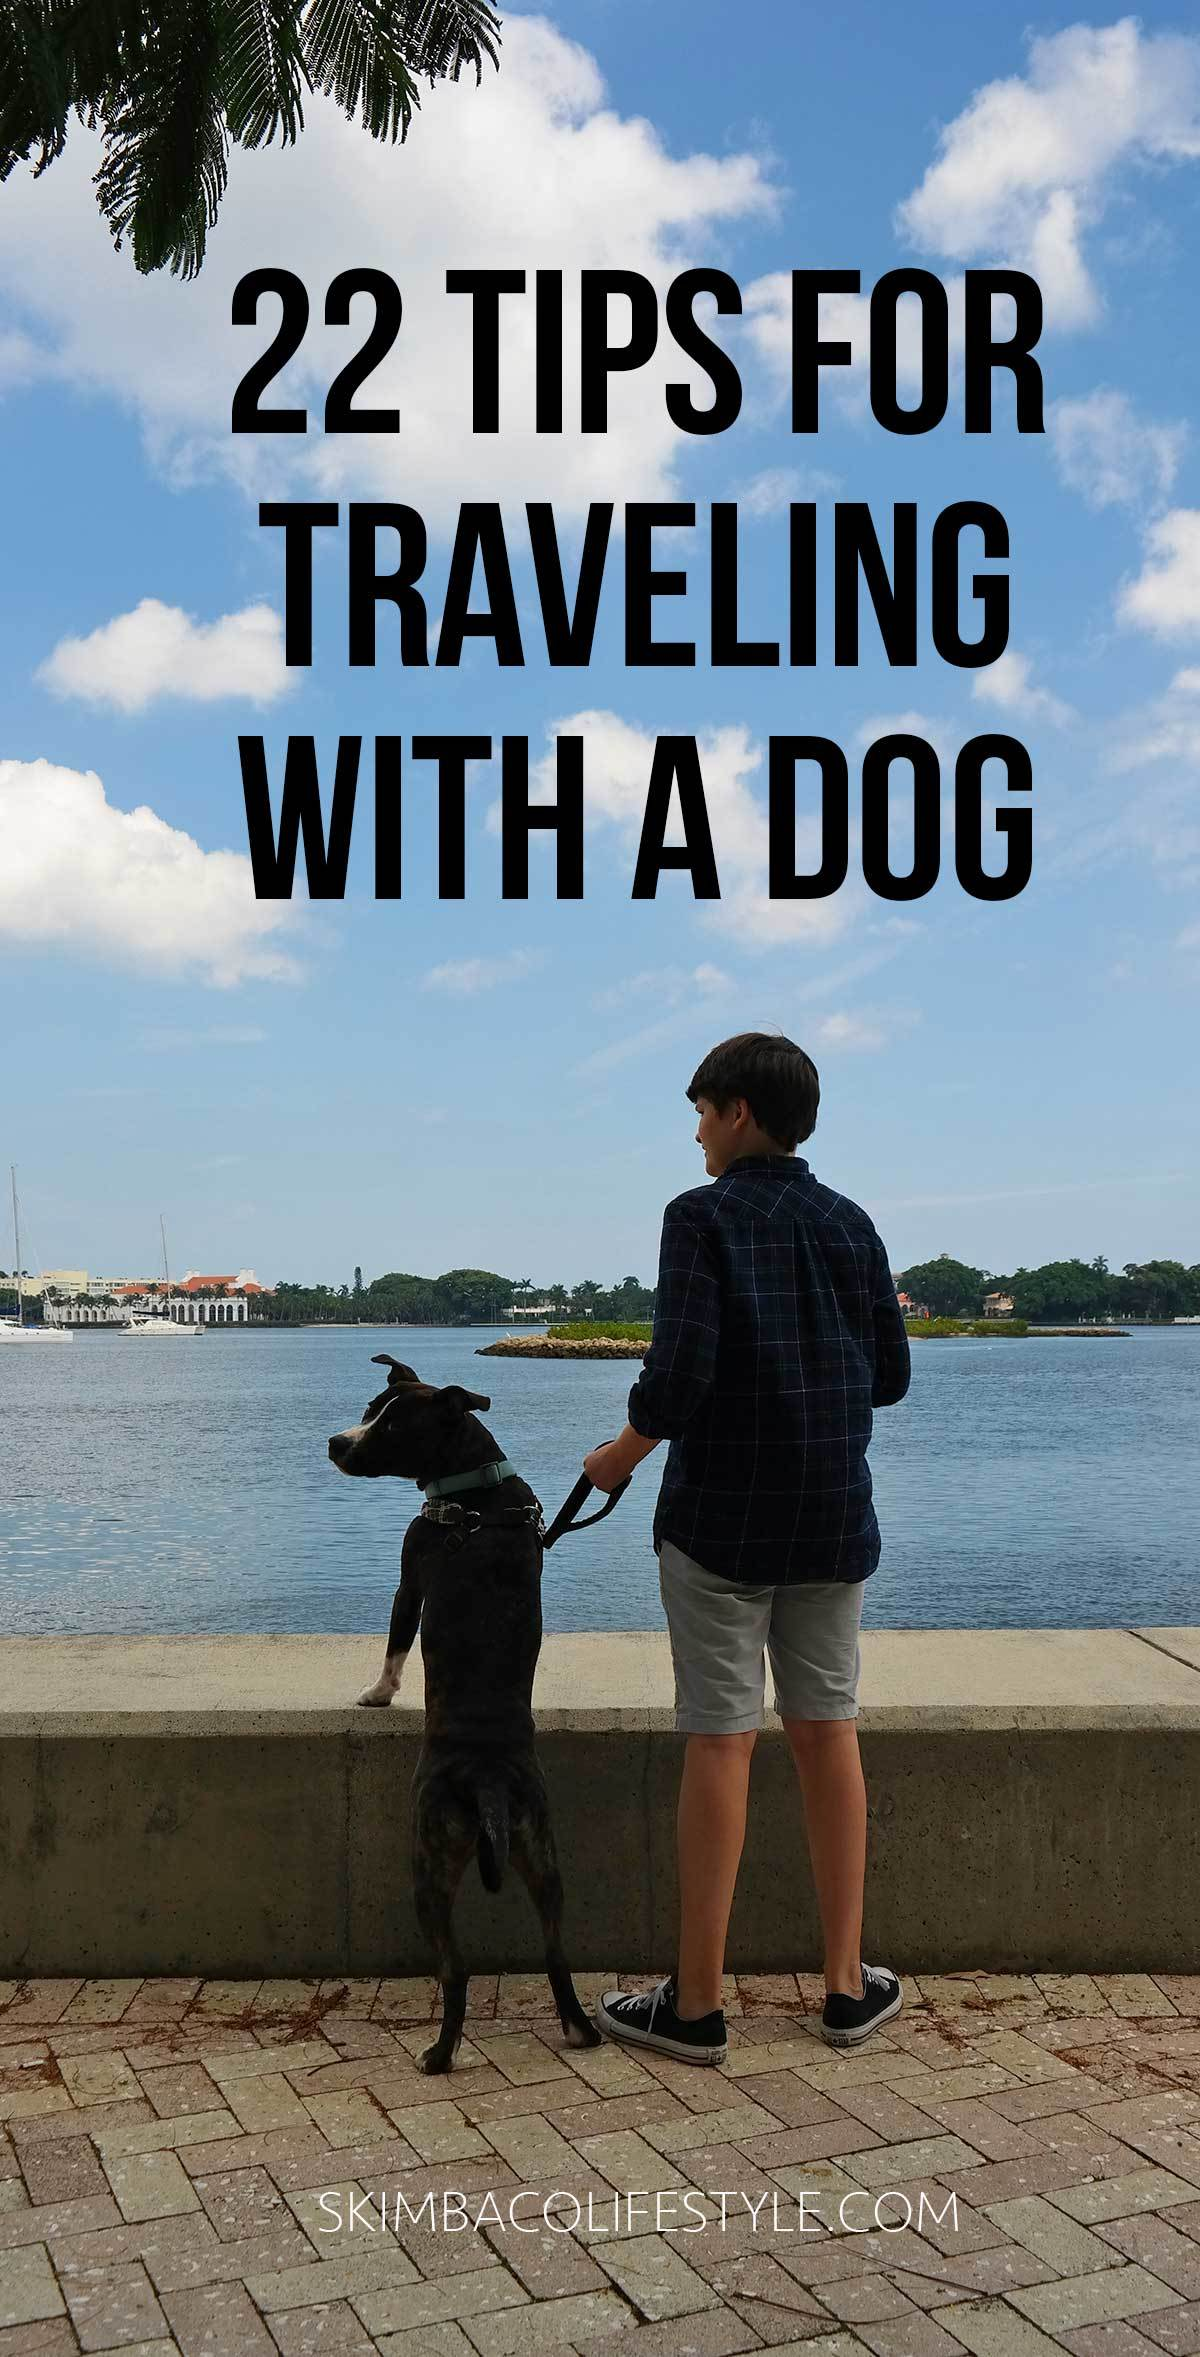 The Ultimate pet travel guide! 22 tips for traveling with a dog! Via travel experts at @skimbaco